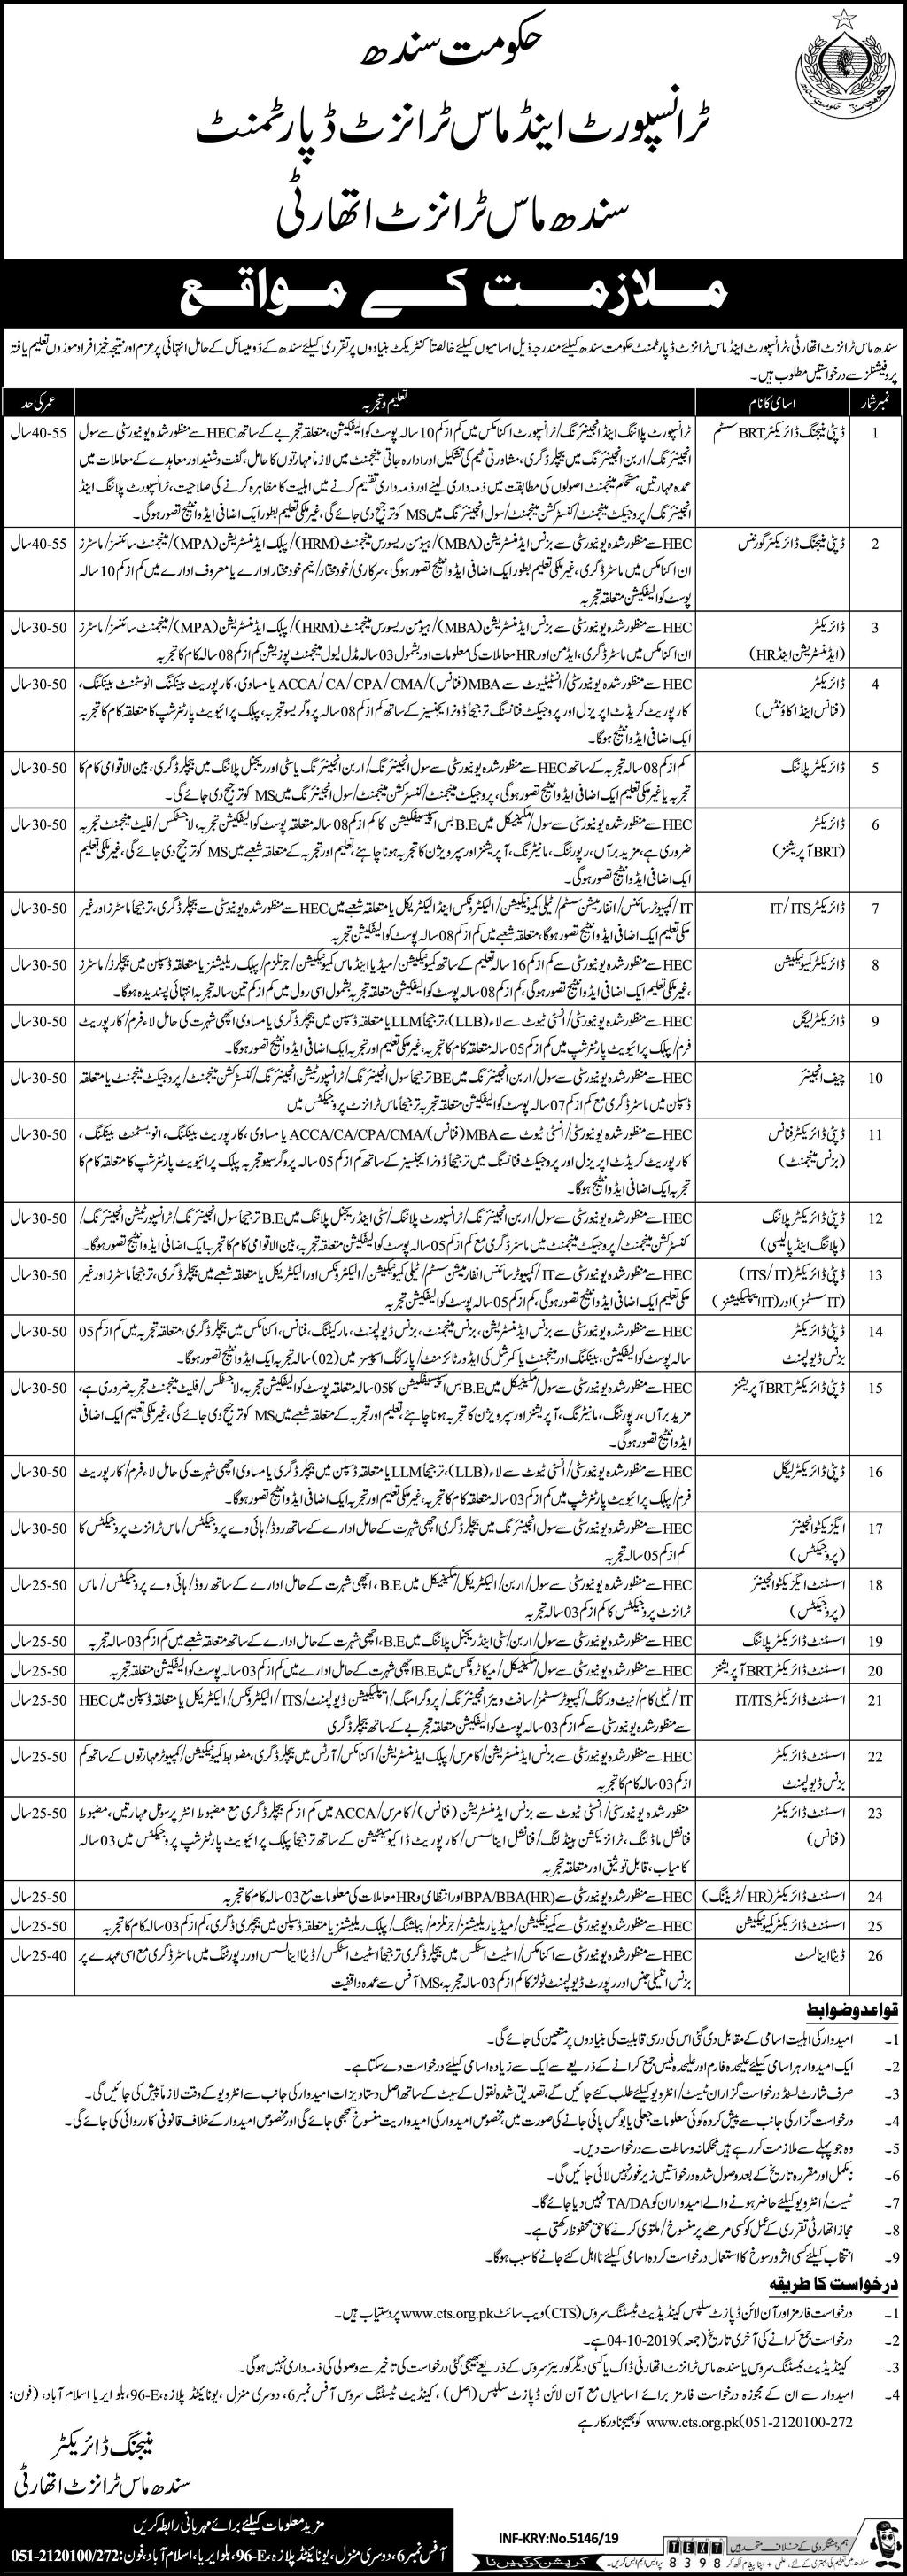 SMTA Sindh Mass Transit Authority CTS Jobs 2019 Application Form Roll No Slip